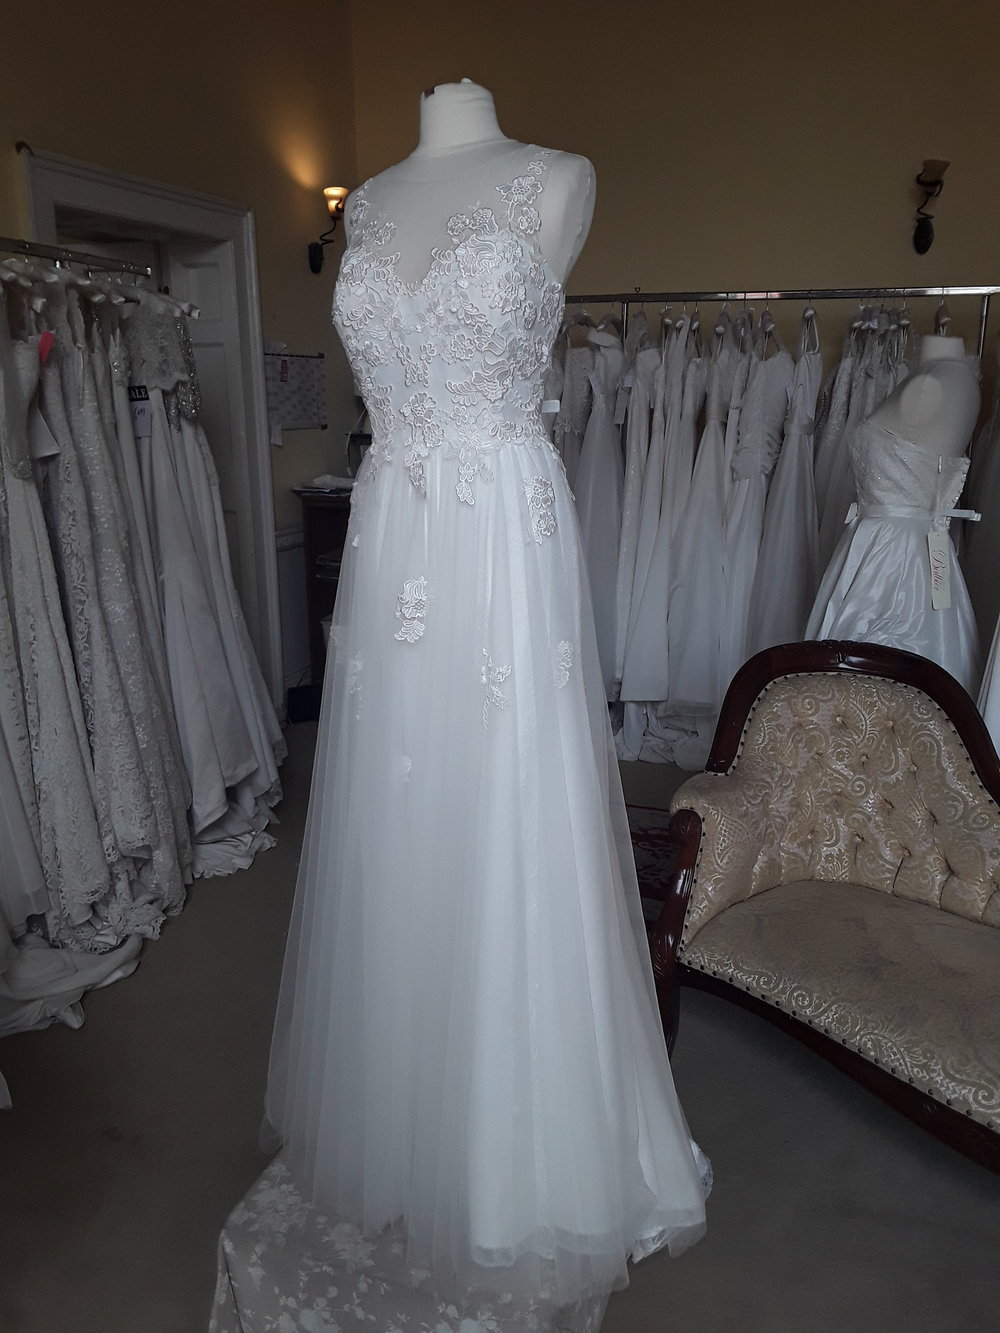 White Rose Straight Tulle Dress with Embroidered Flower Detail  Colour: ivory  Size : 16  Was €1,395 now €599  Ref: E103